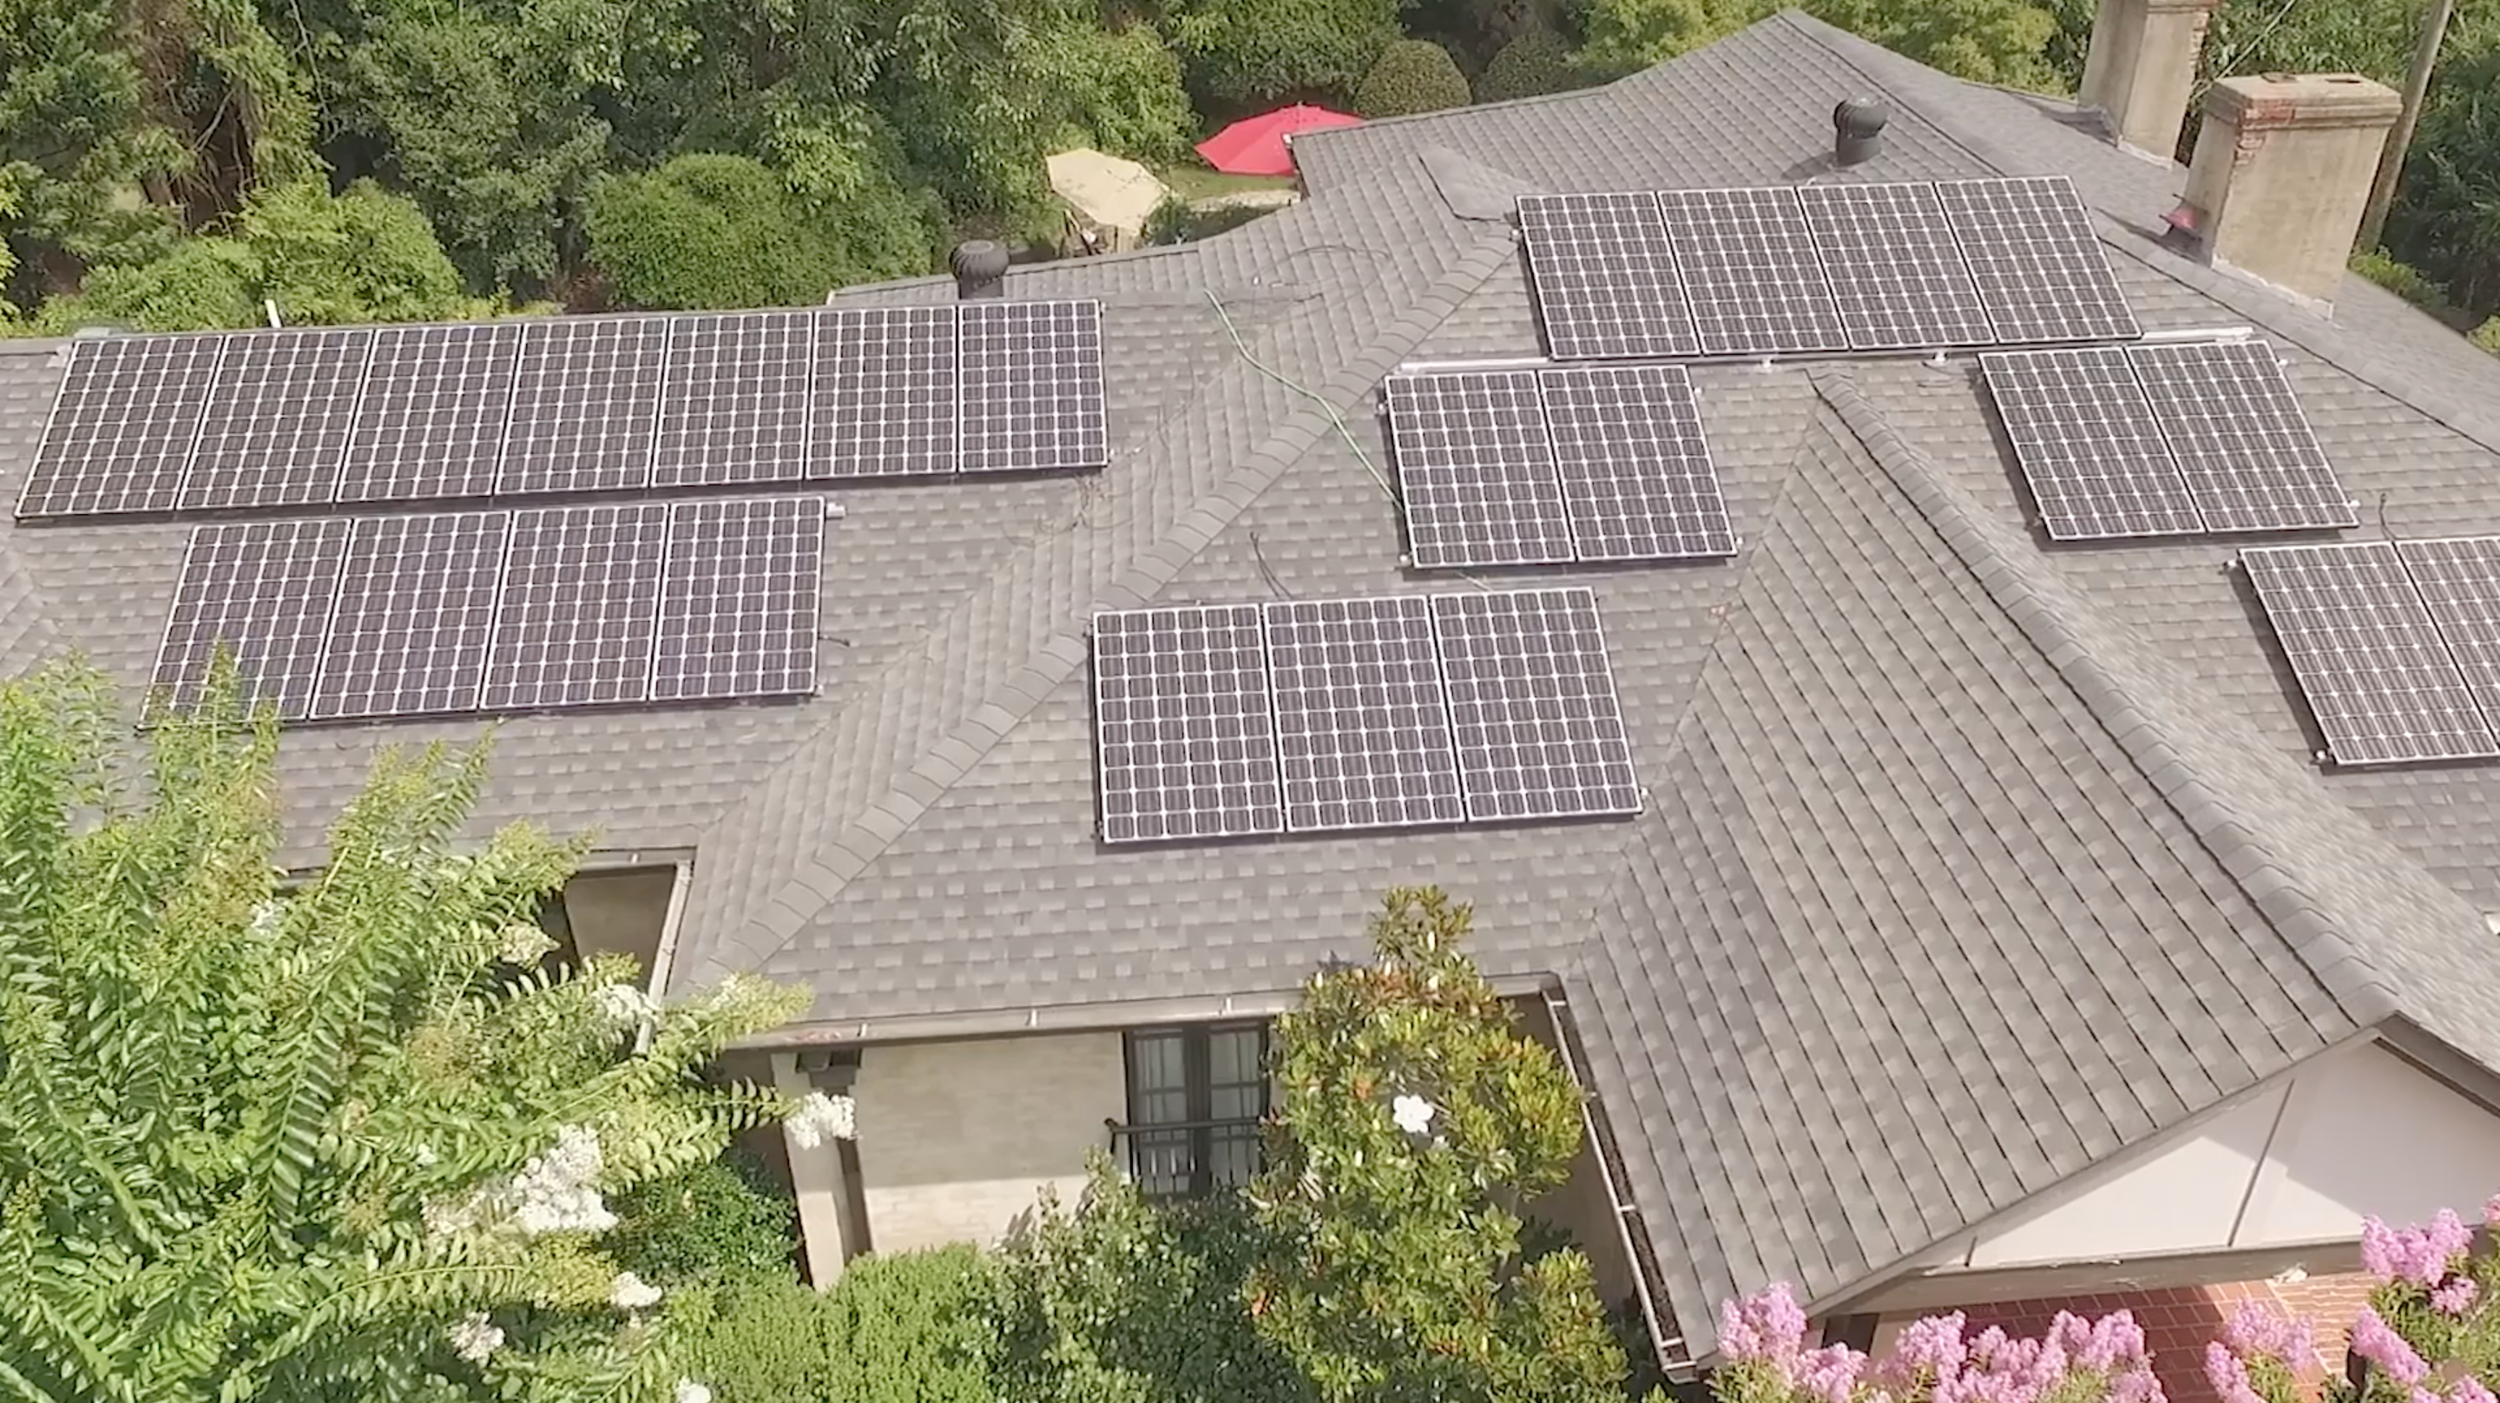 On the Horizon – A new solar system is installed on the home of a Birmingham resident.